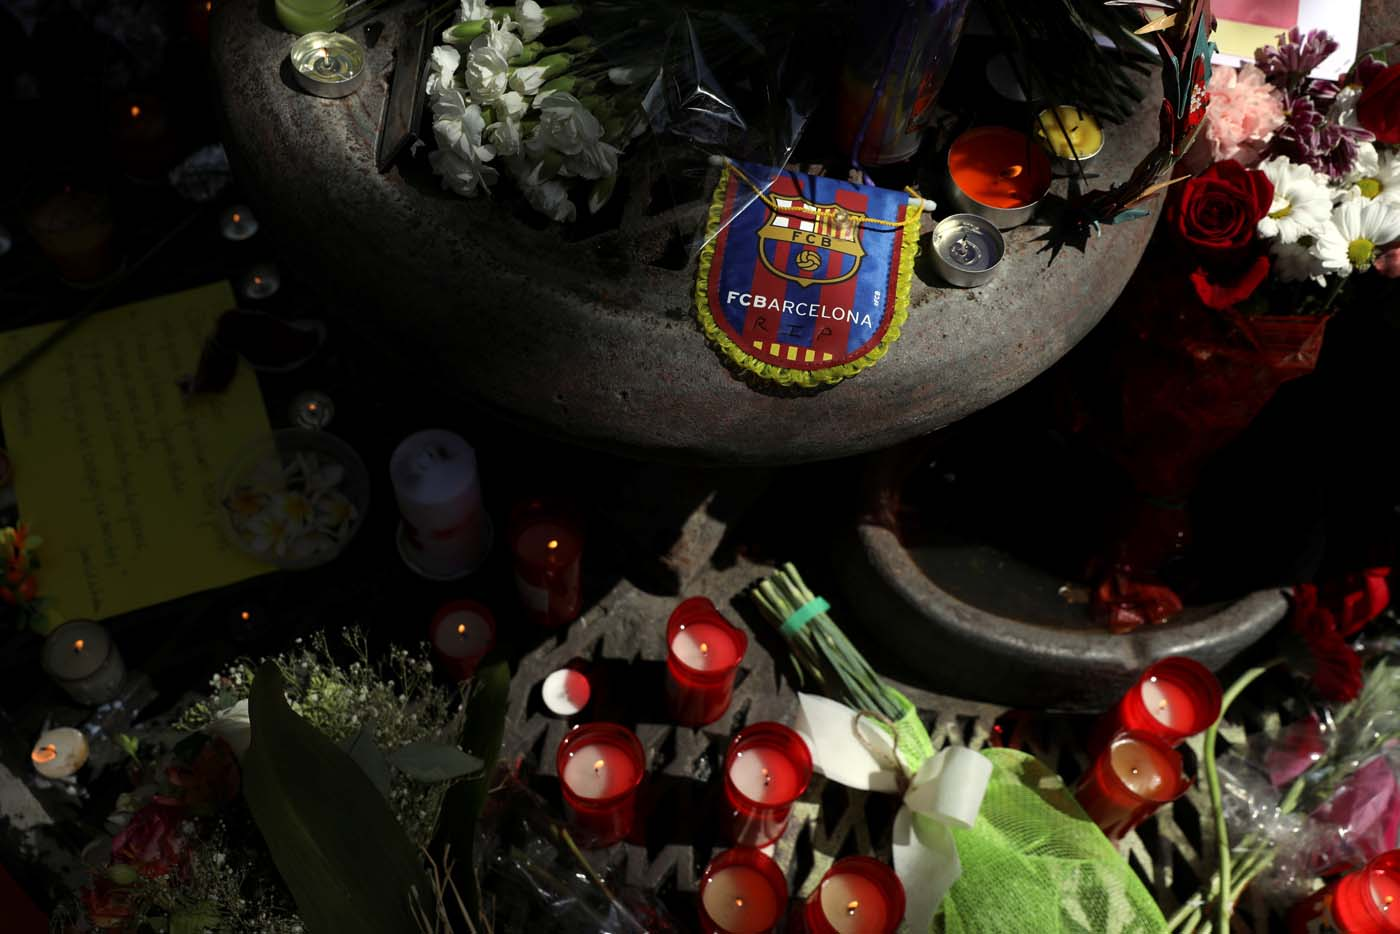 An impromptu memorial is seen a day after a van crashed into pedestrians at Las Ramblas in Barcelona, Spain August 18, 2017. REUTERS/Susana Vera